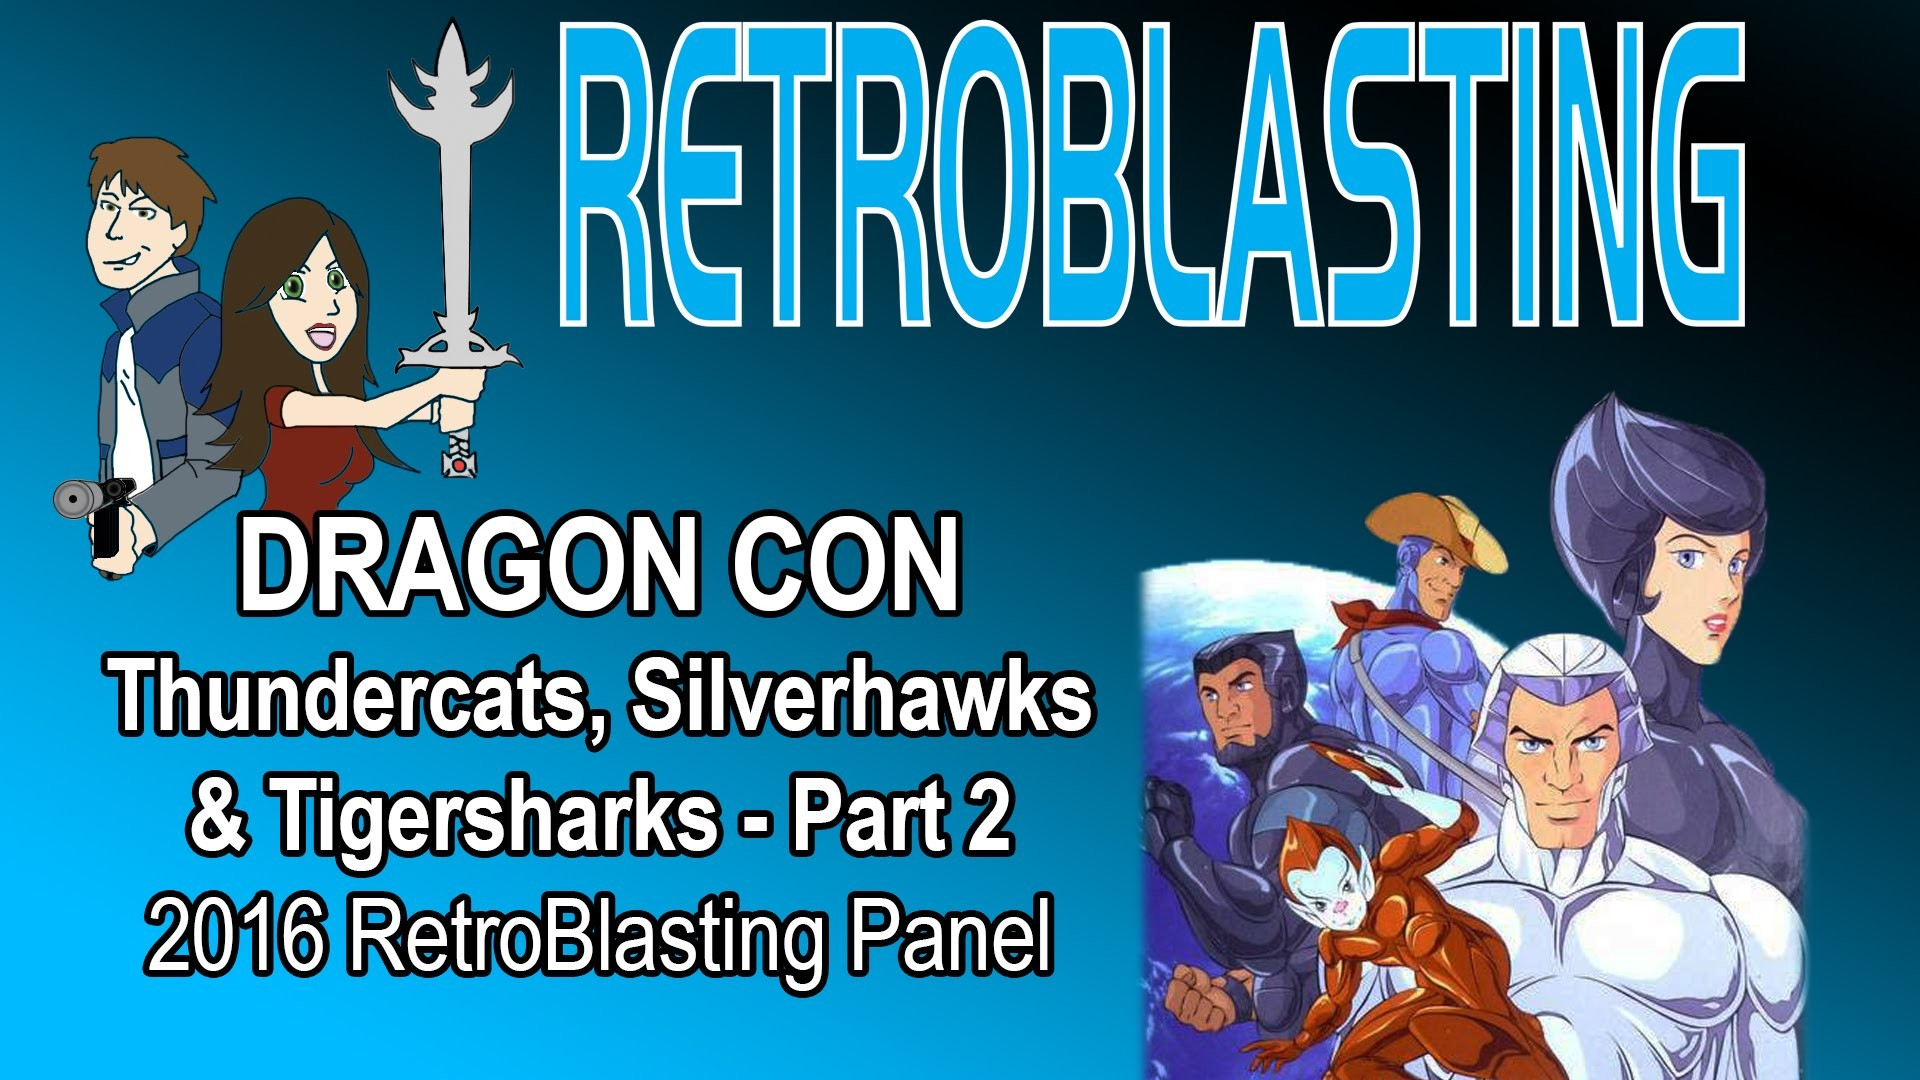 Res: 1920x1080, DragonCon 2016 Thundercats Silverhawks RetroBlasting Panel - Part 2/2